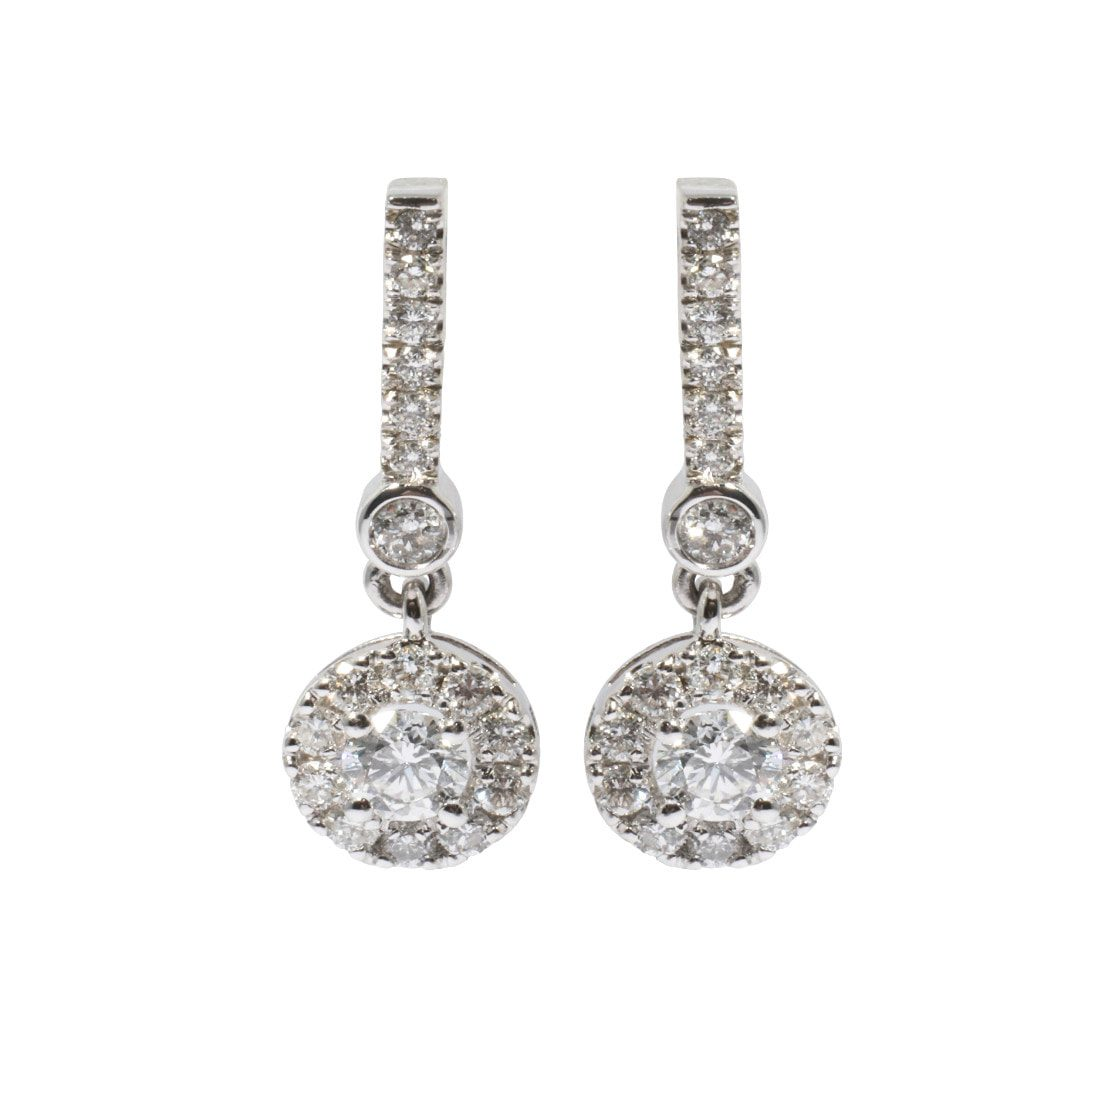 White gold and diamond earrings